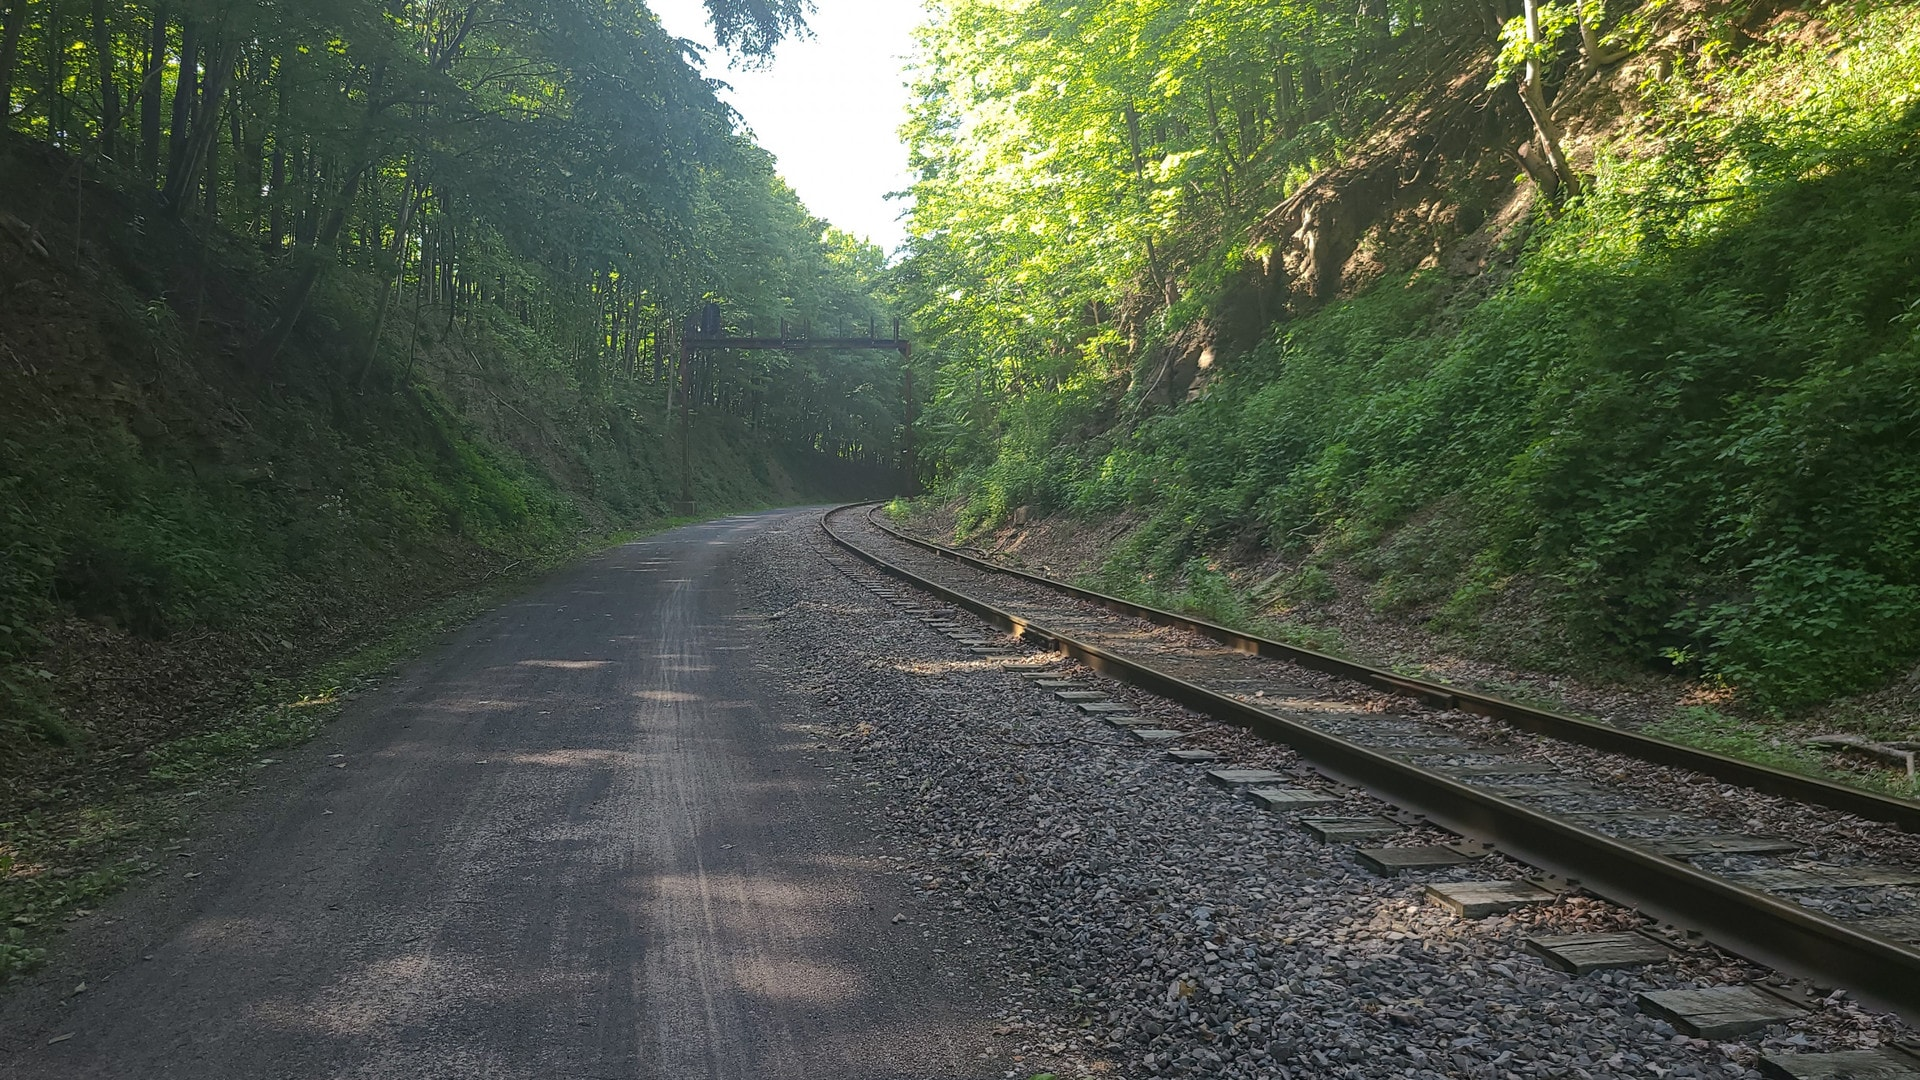 A crushed limestone trail follows a rail line through a small valley. Trees line either side. Old metal signaling equipment is visible in the distance.